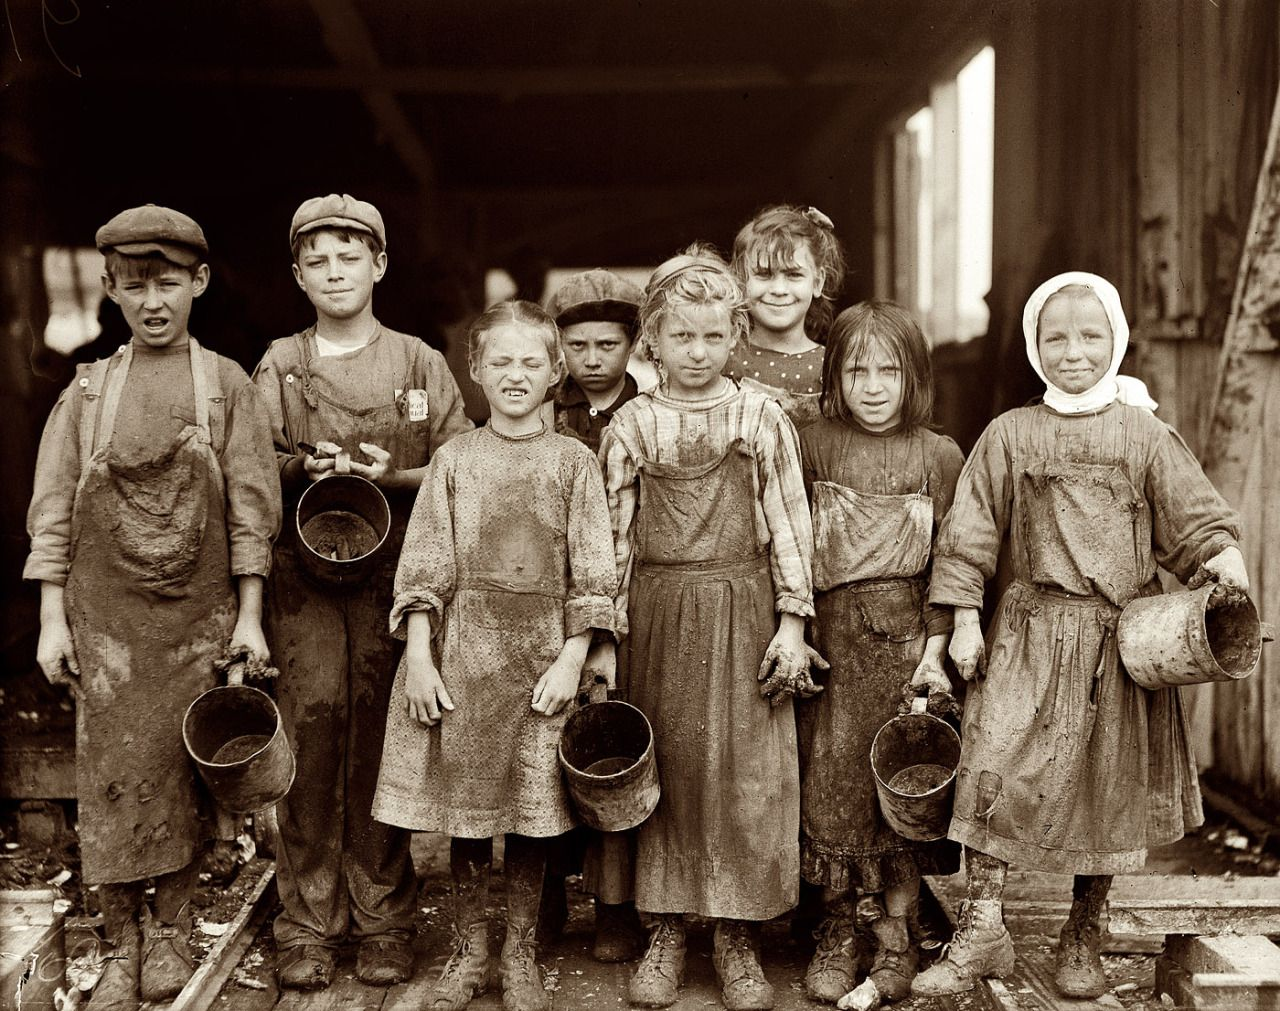 Child Labor, Lil Shuckers, 1912 - by Lewis Hine (1874 - 1940), USA ...